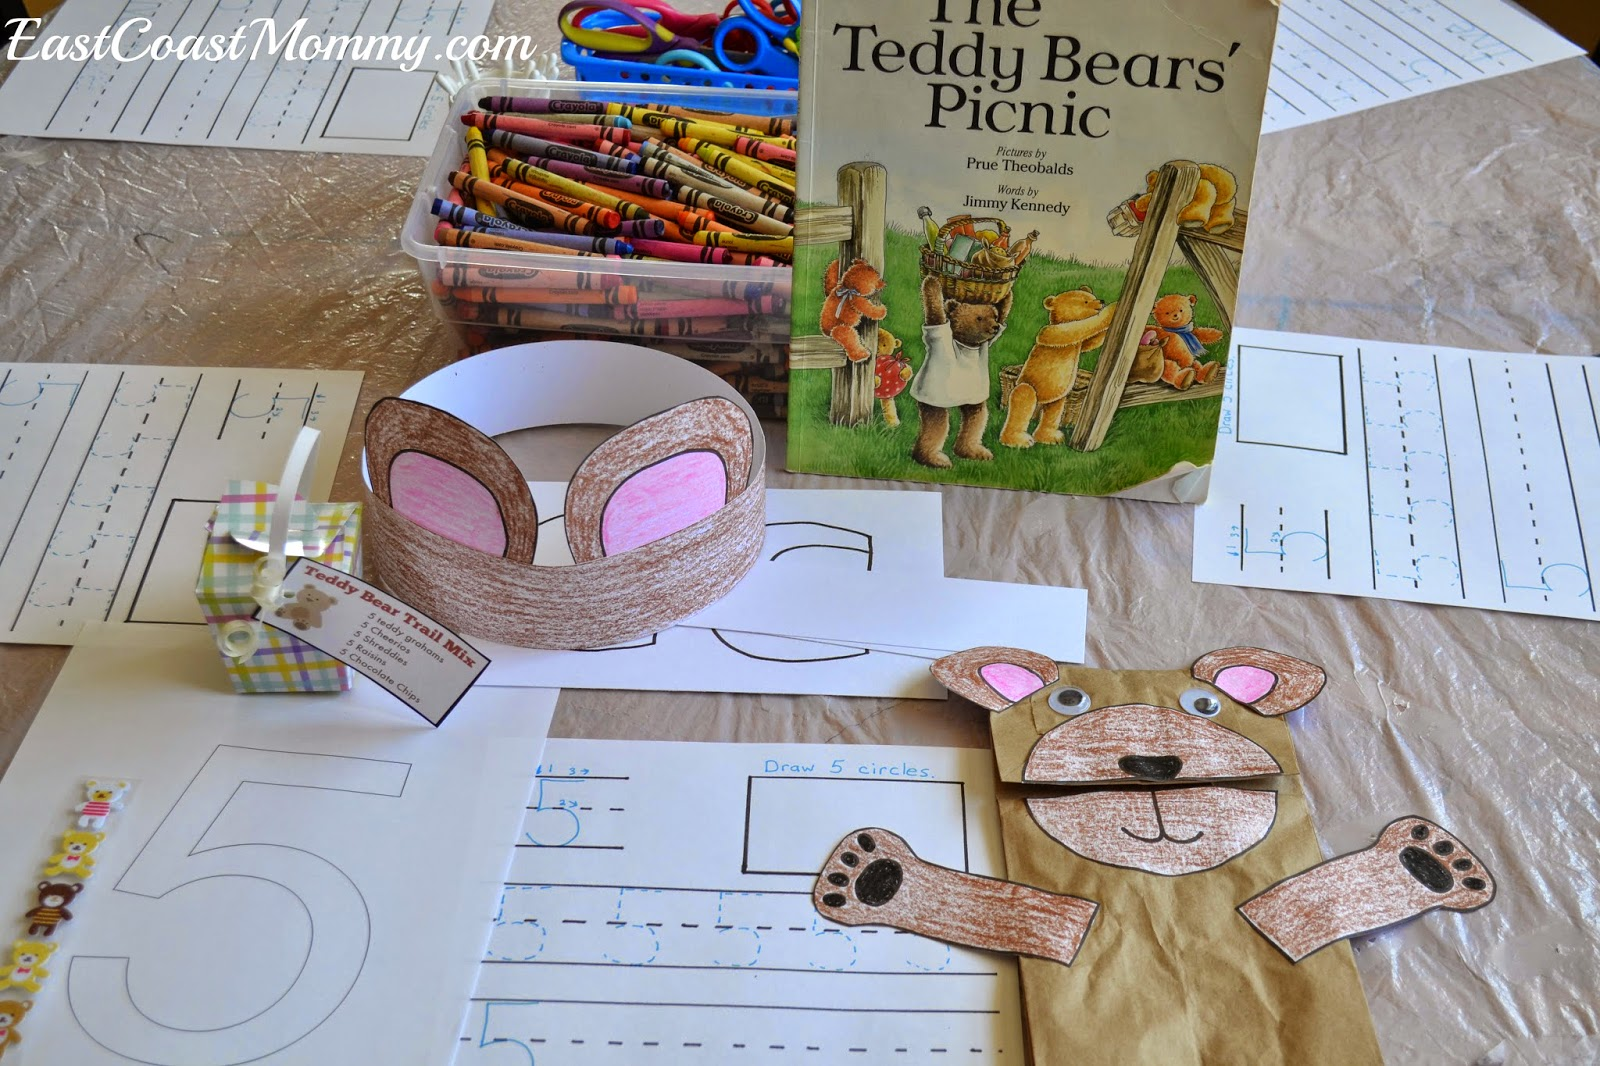 Teddy Bears Picnic Games